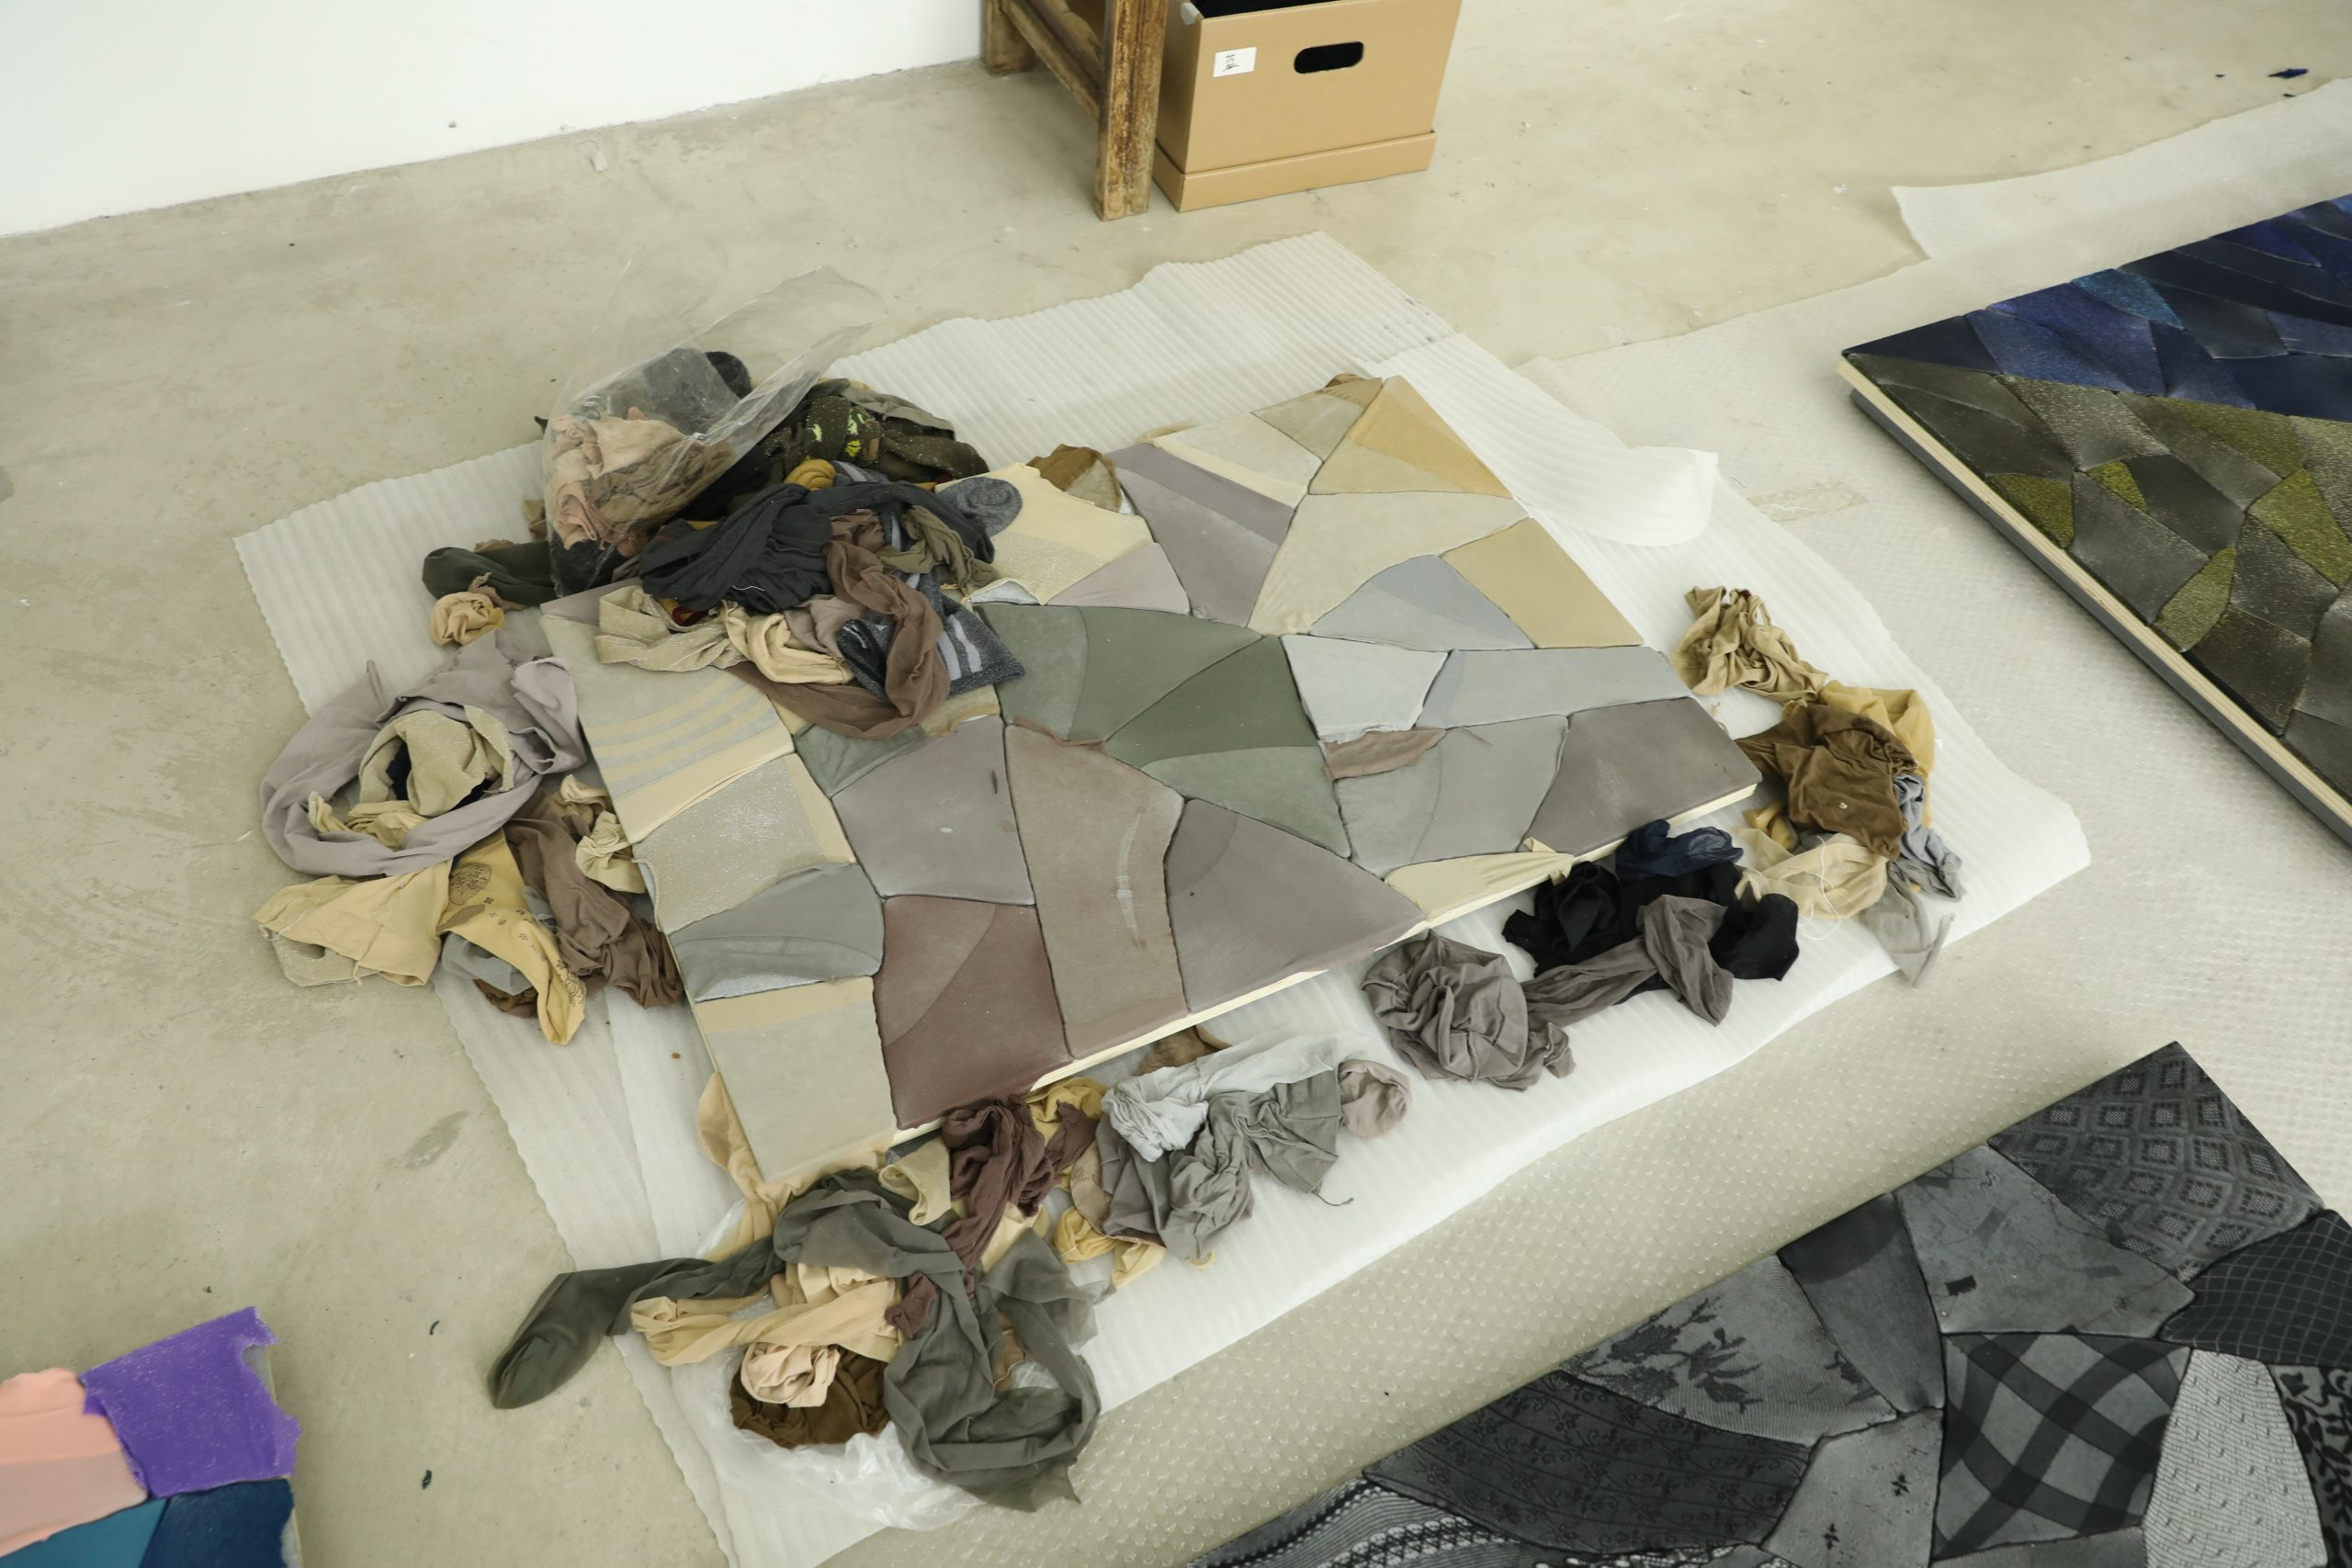 Assorted nylon stockings and a work in progress in Ma Qiusha's studio. Photo commissioned by the Smart Museum of Art during an artist interview. Photo by Yaya Rotem.